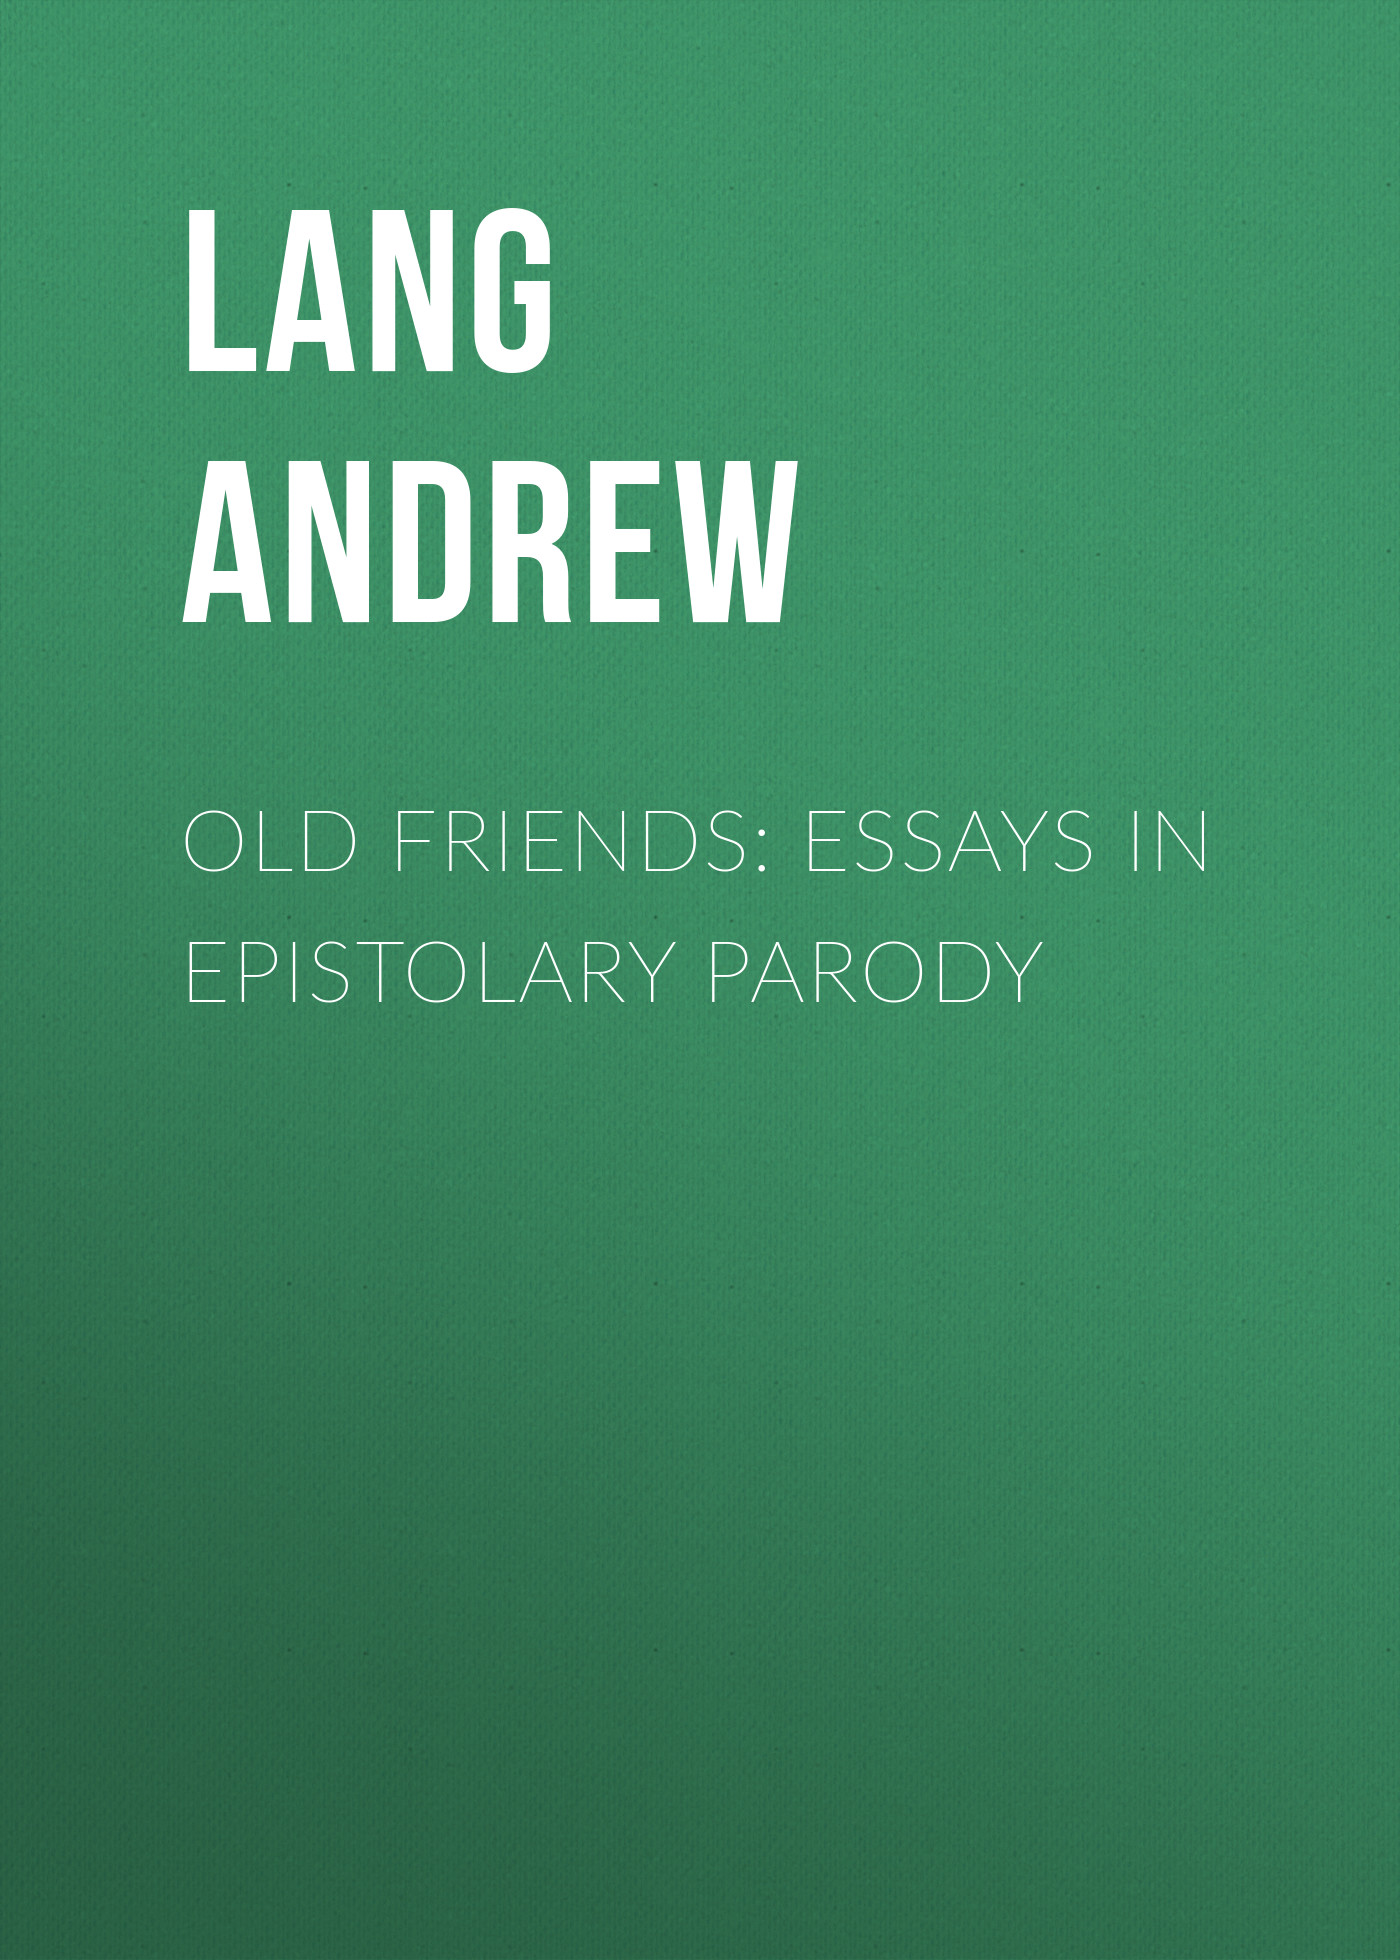 цена Lang Andrew Old Friends: Essays in Epistolary Parody онлайн в 2017 году